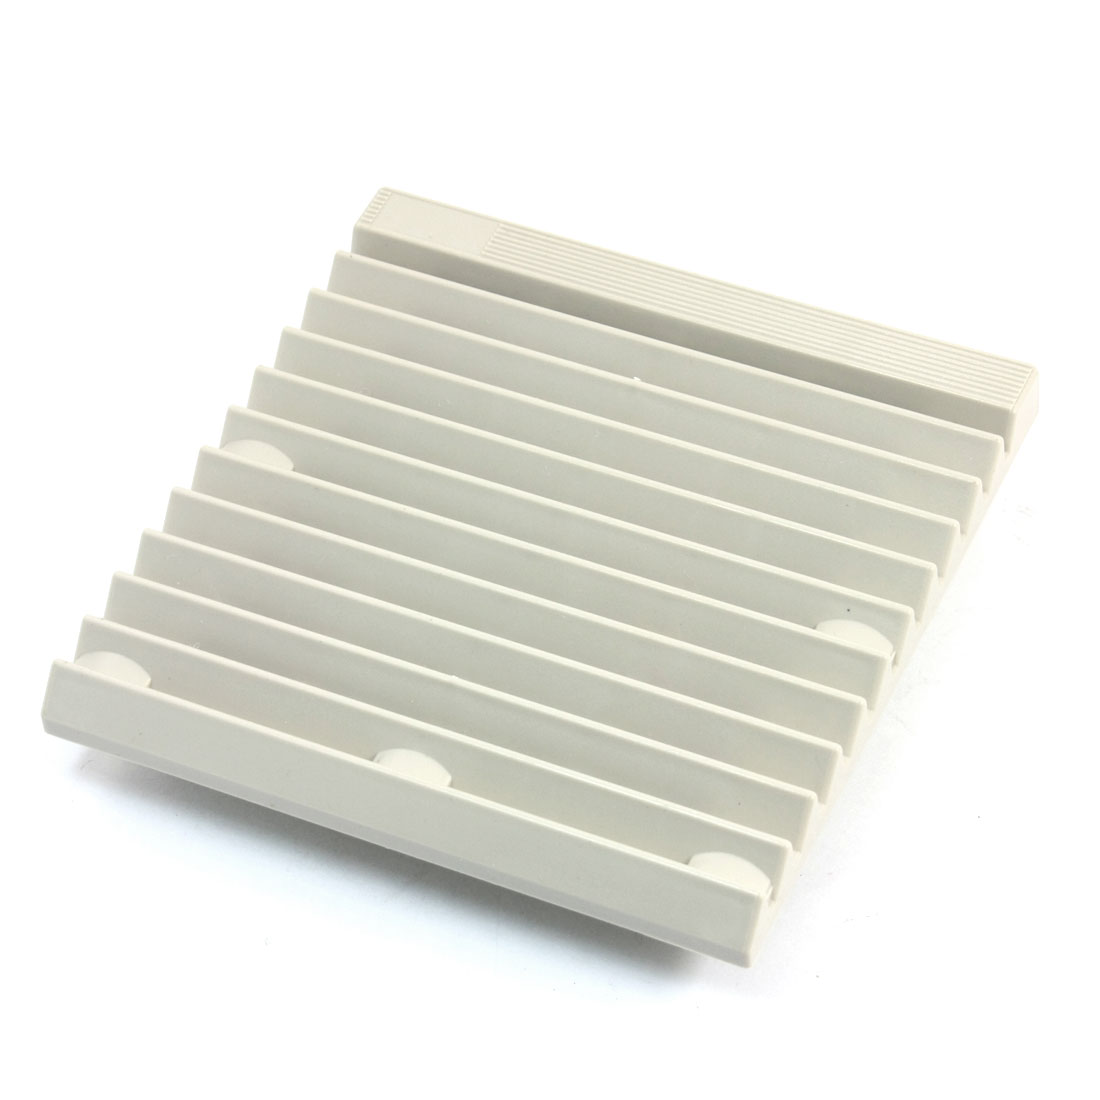 148.5mm x 148.5mm Square Gray Plastic Dustproof Mesh Sponge Foam Cabinet Axial Flow Fan Dust Air Filter